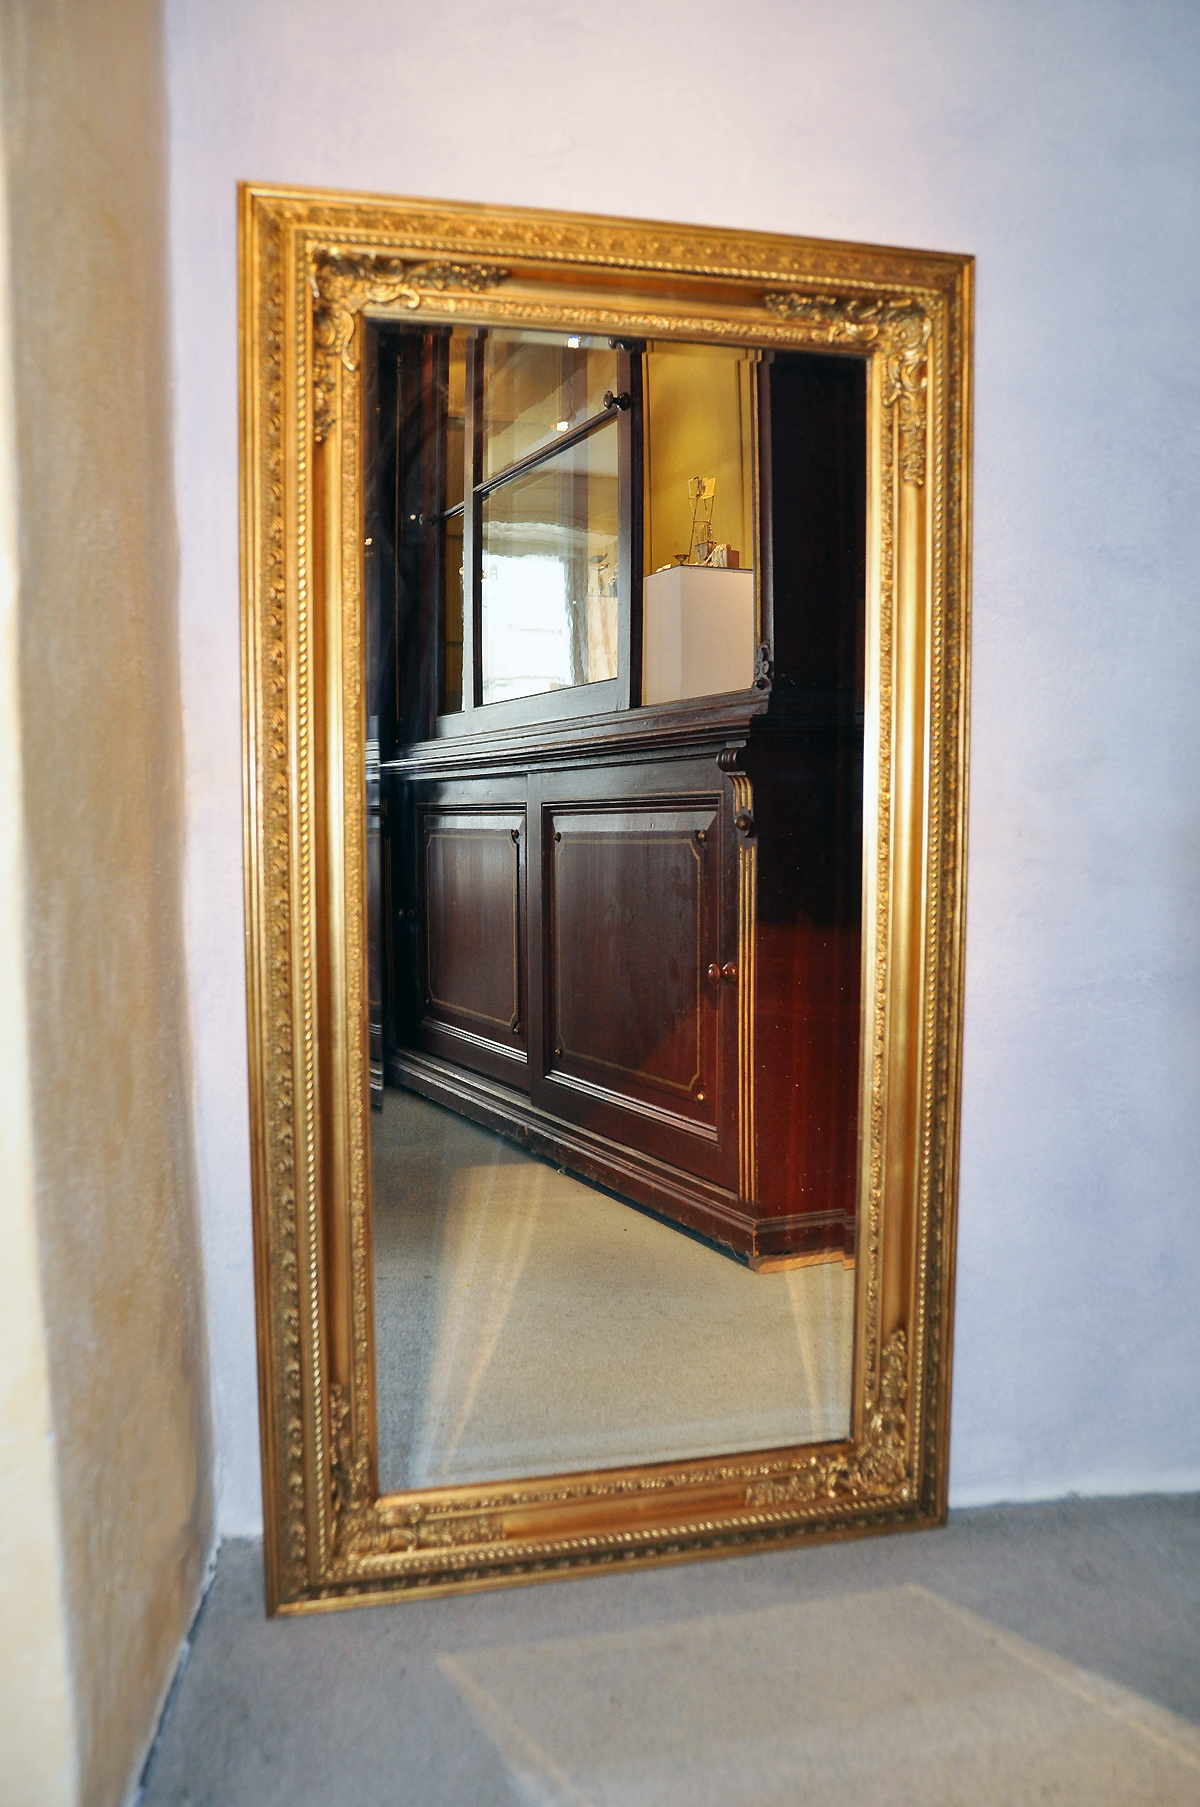 barock wandspiegel zierspiegel goldspiegel 61x 180 cm gold elegant stilvoll neu ebay. Black Bedroom Furniture Sets. Home Design Ideas